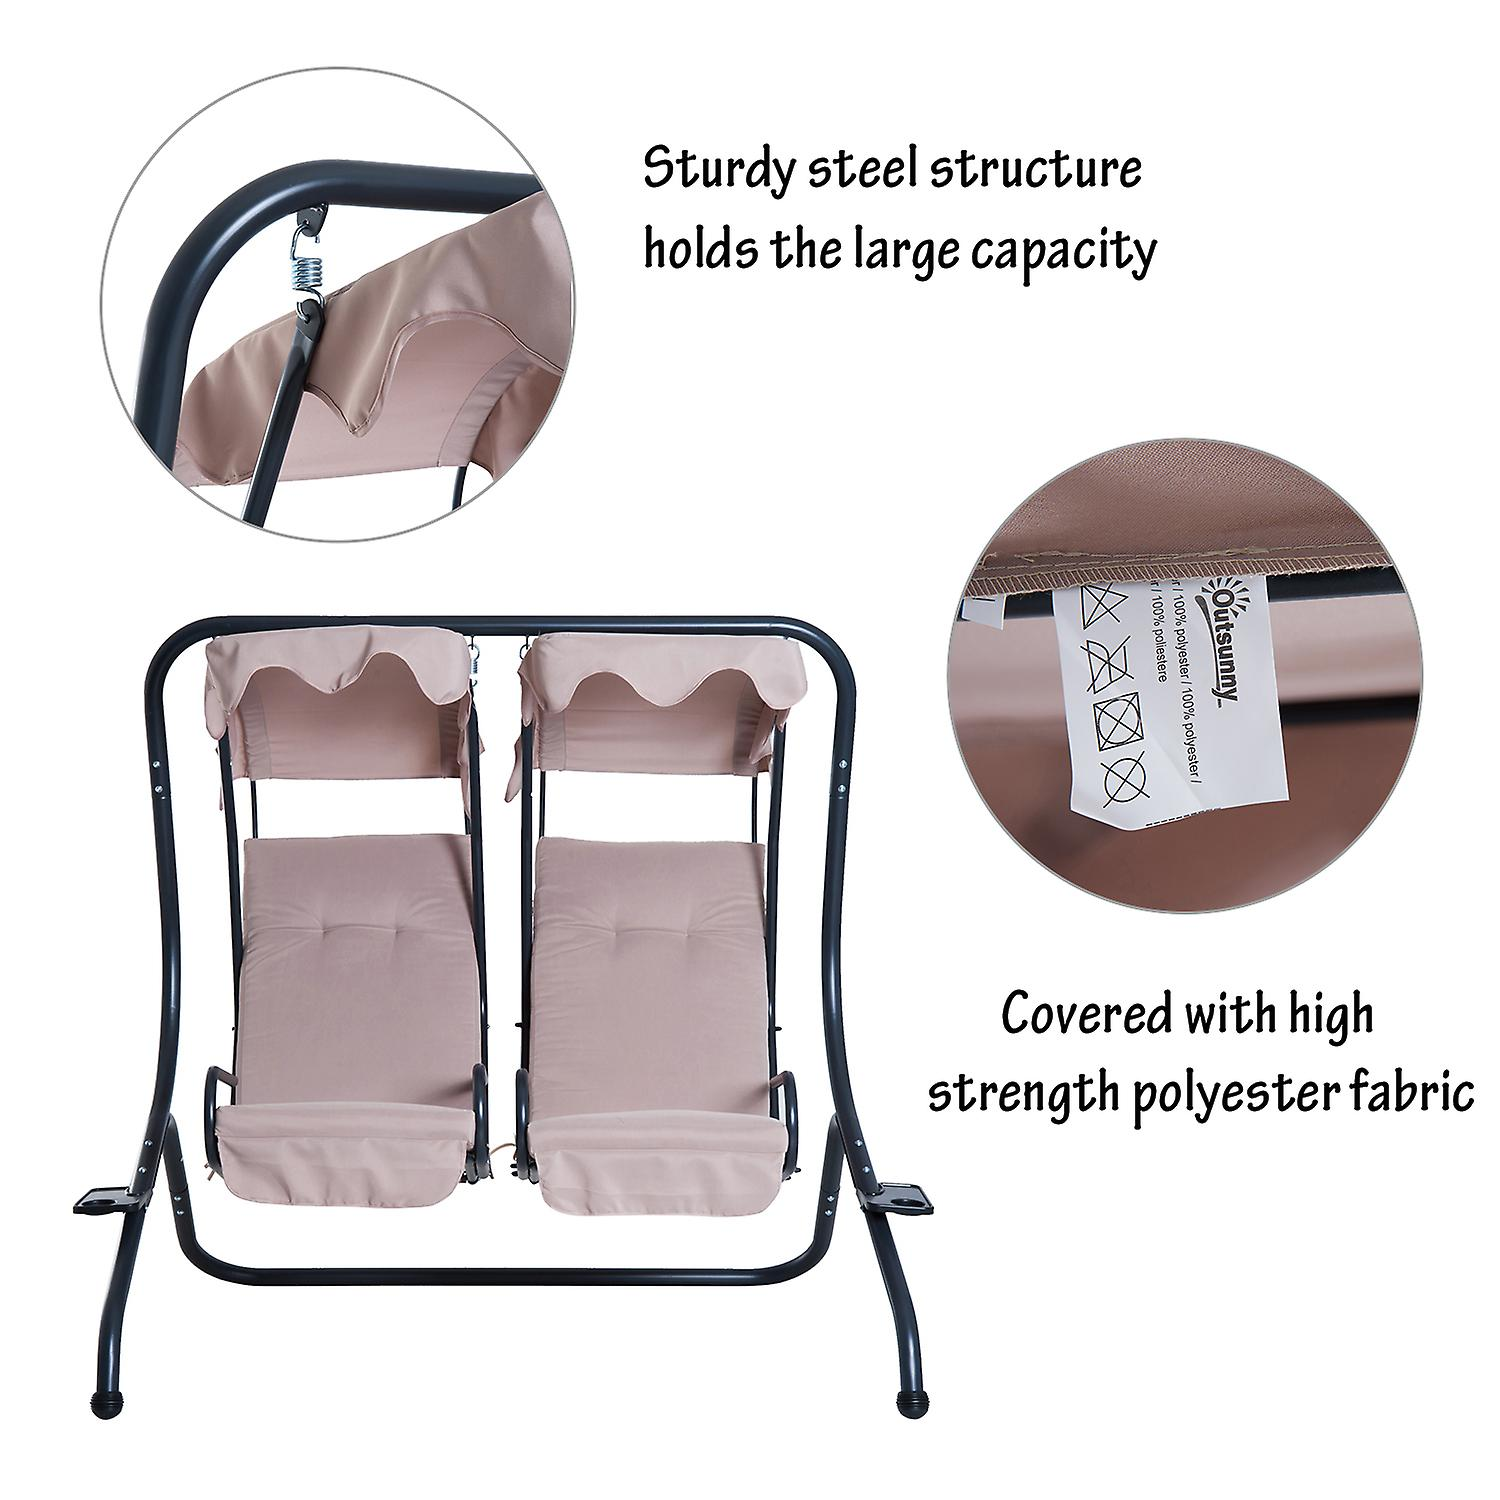 Garden Swing Chair Cushioned 3 Seaters Patio Hammock Bed Canopy w// Cup Holders